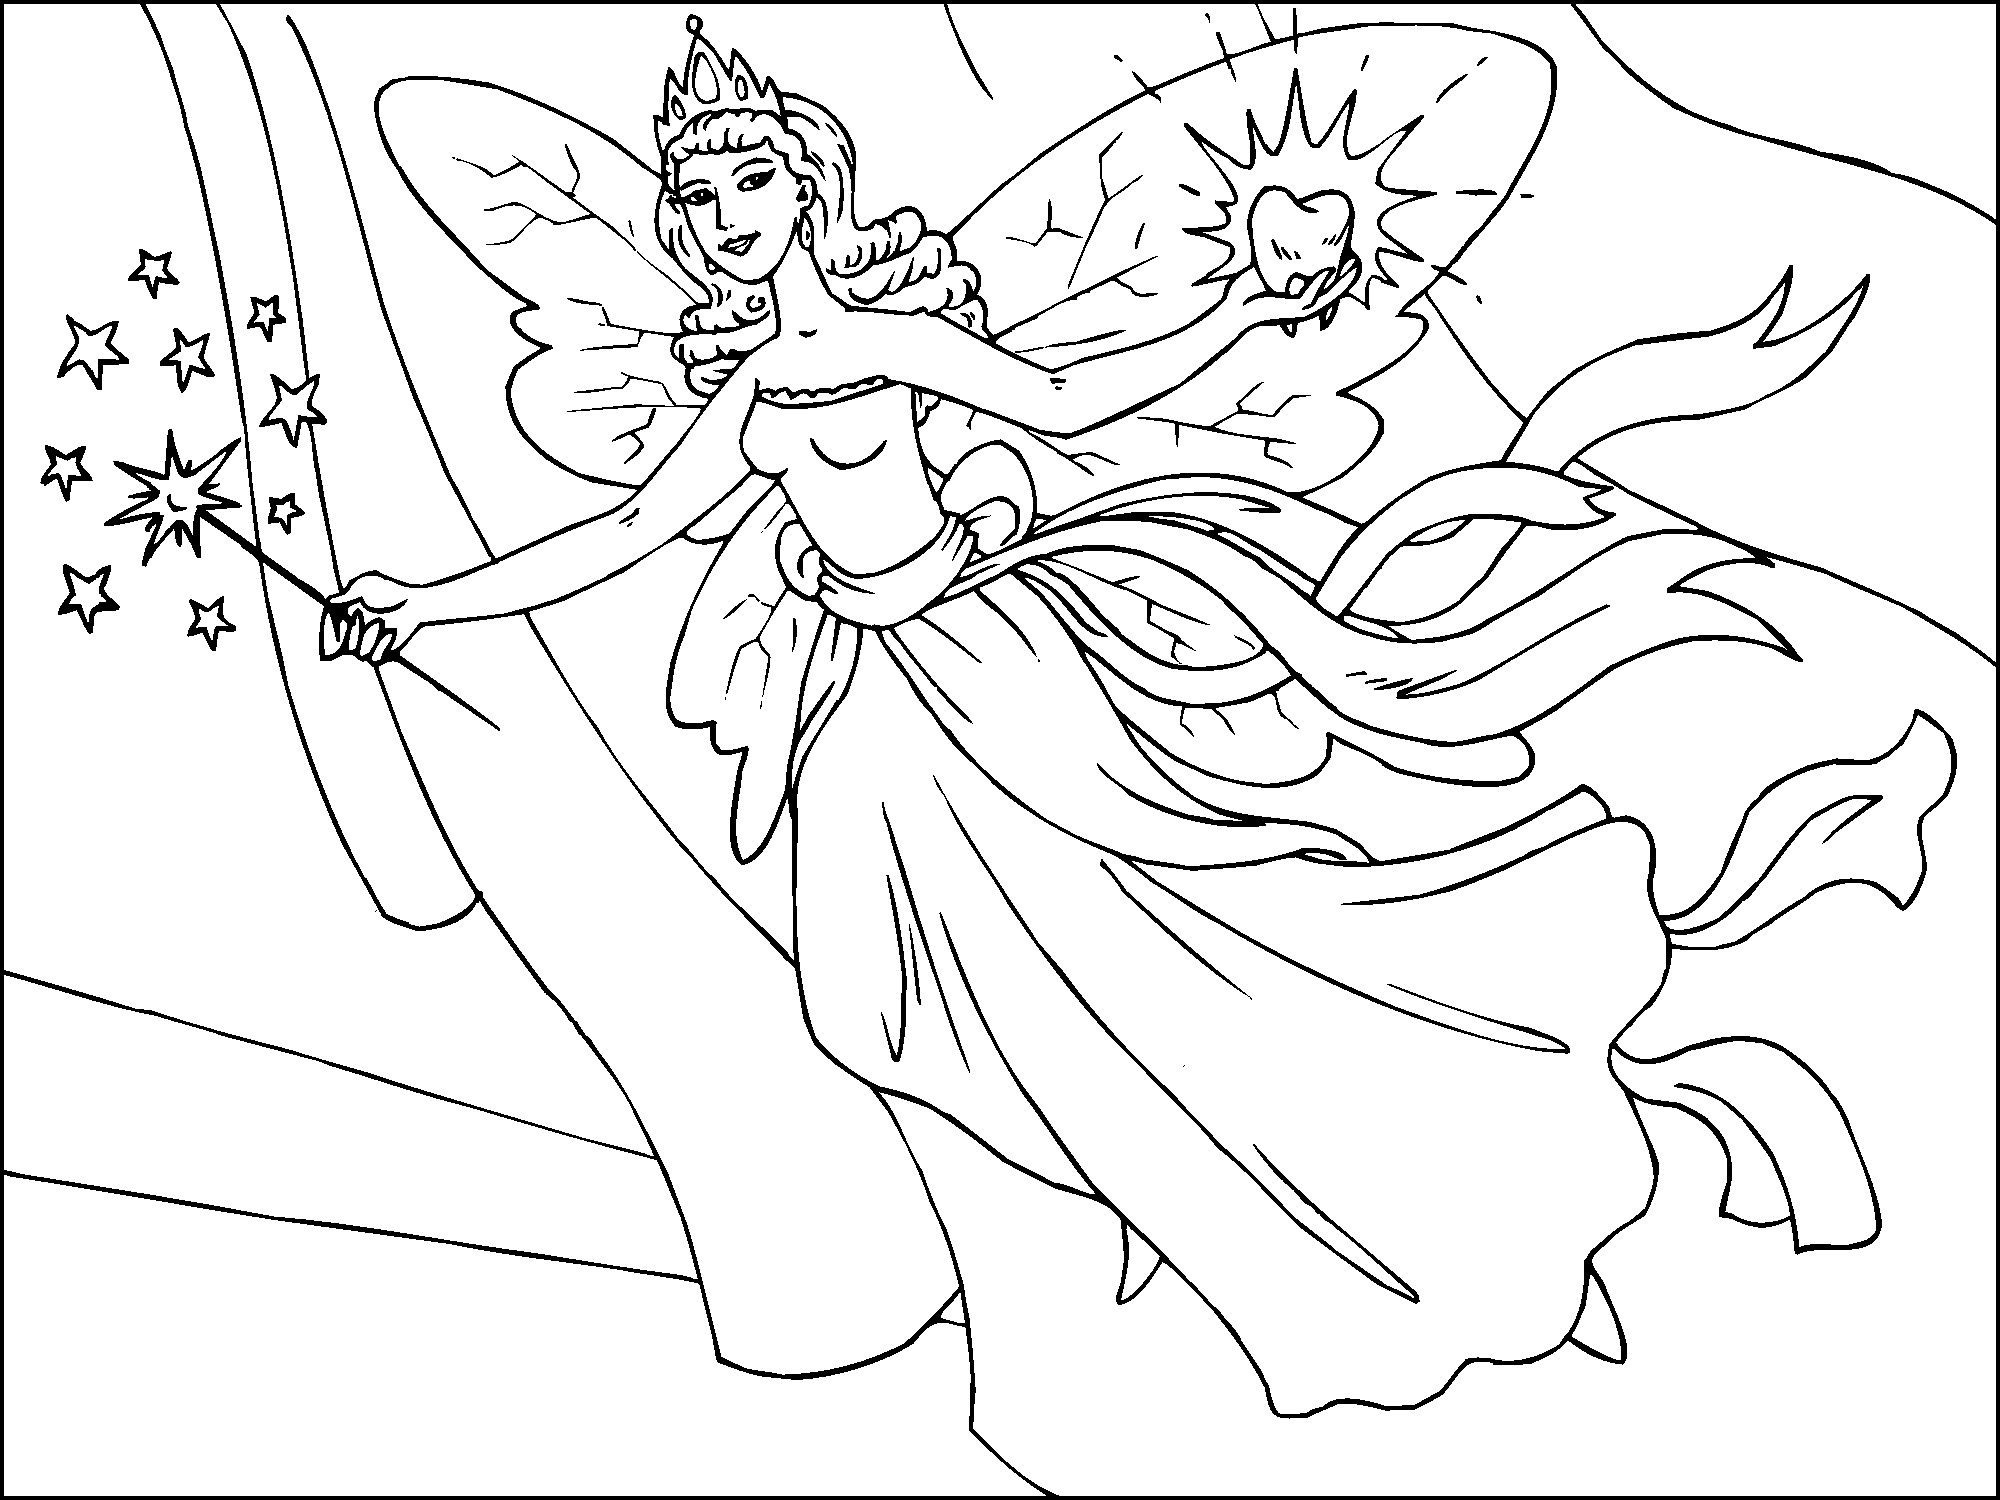 Free Printable Fairy Coloring Pages For Kids | Everything | Fairy - Free Printable Fairy Coloring Pictures